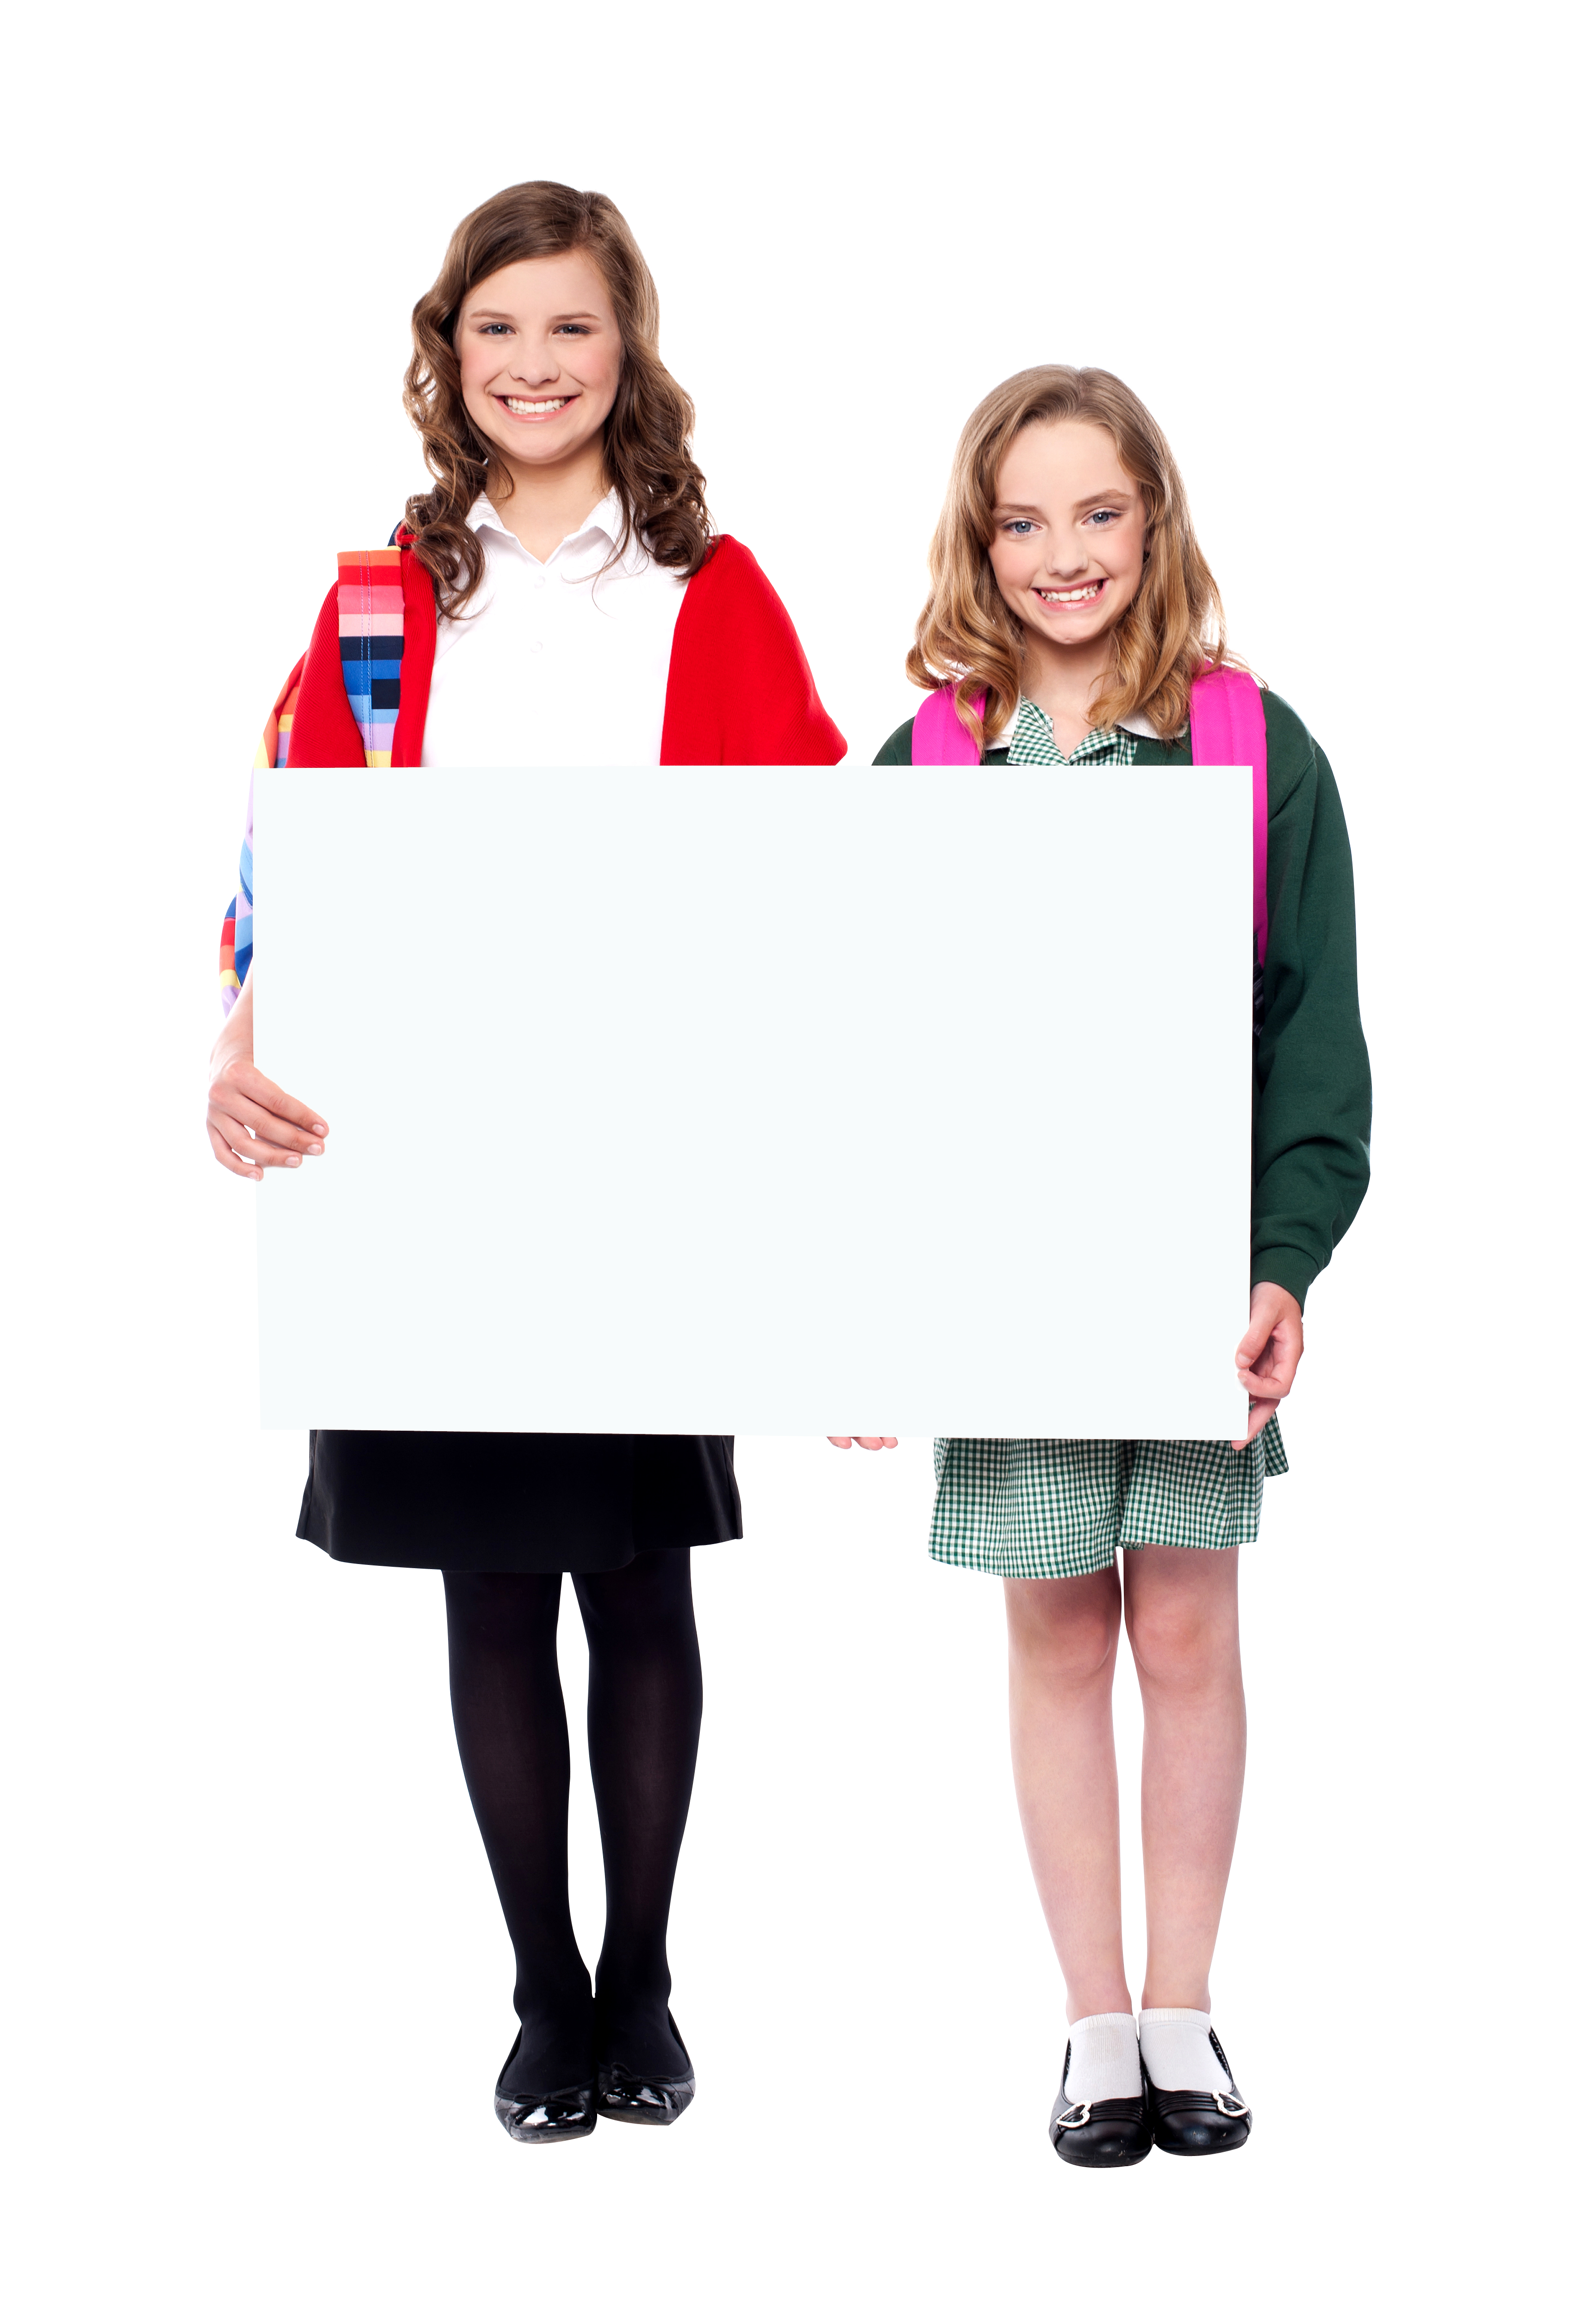 People holding banner royalty. Free png images for commercial use